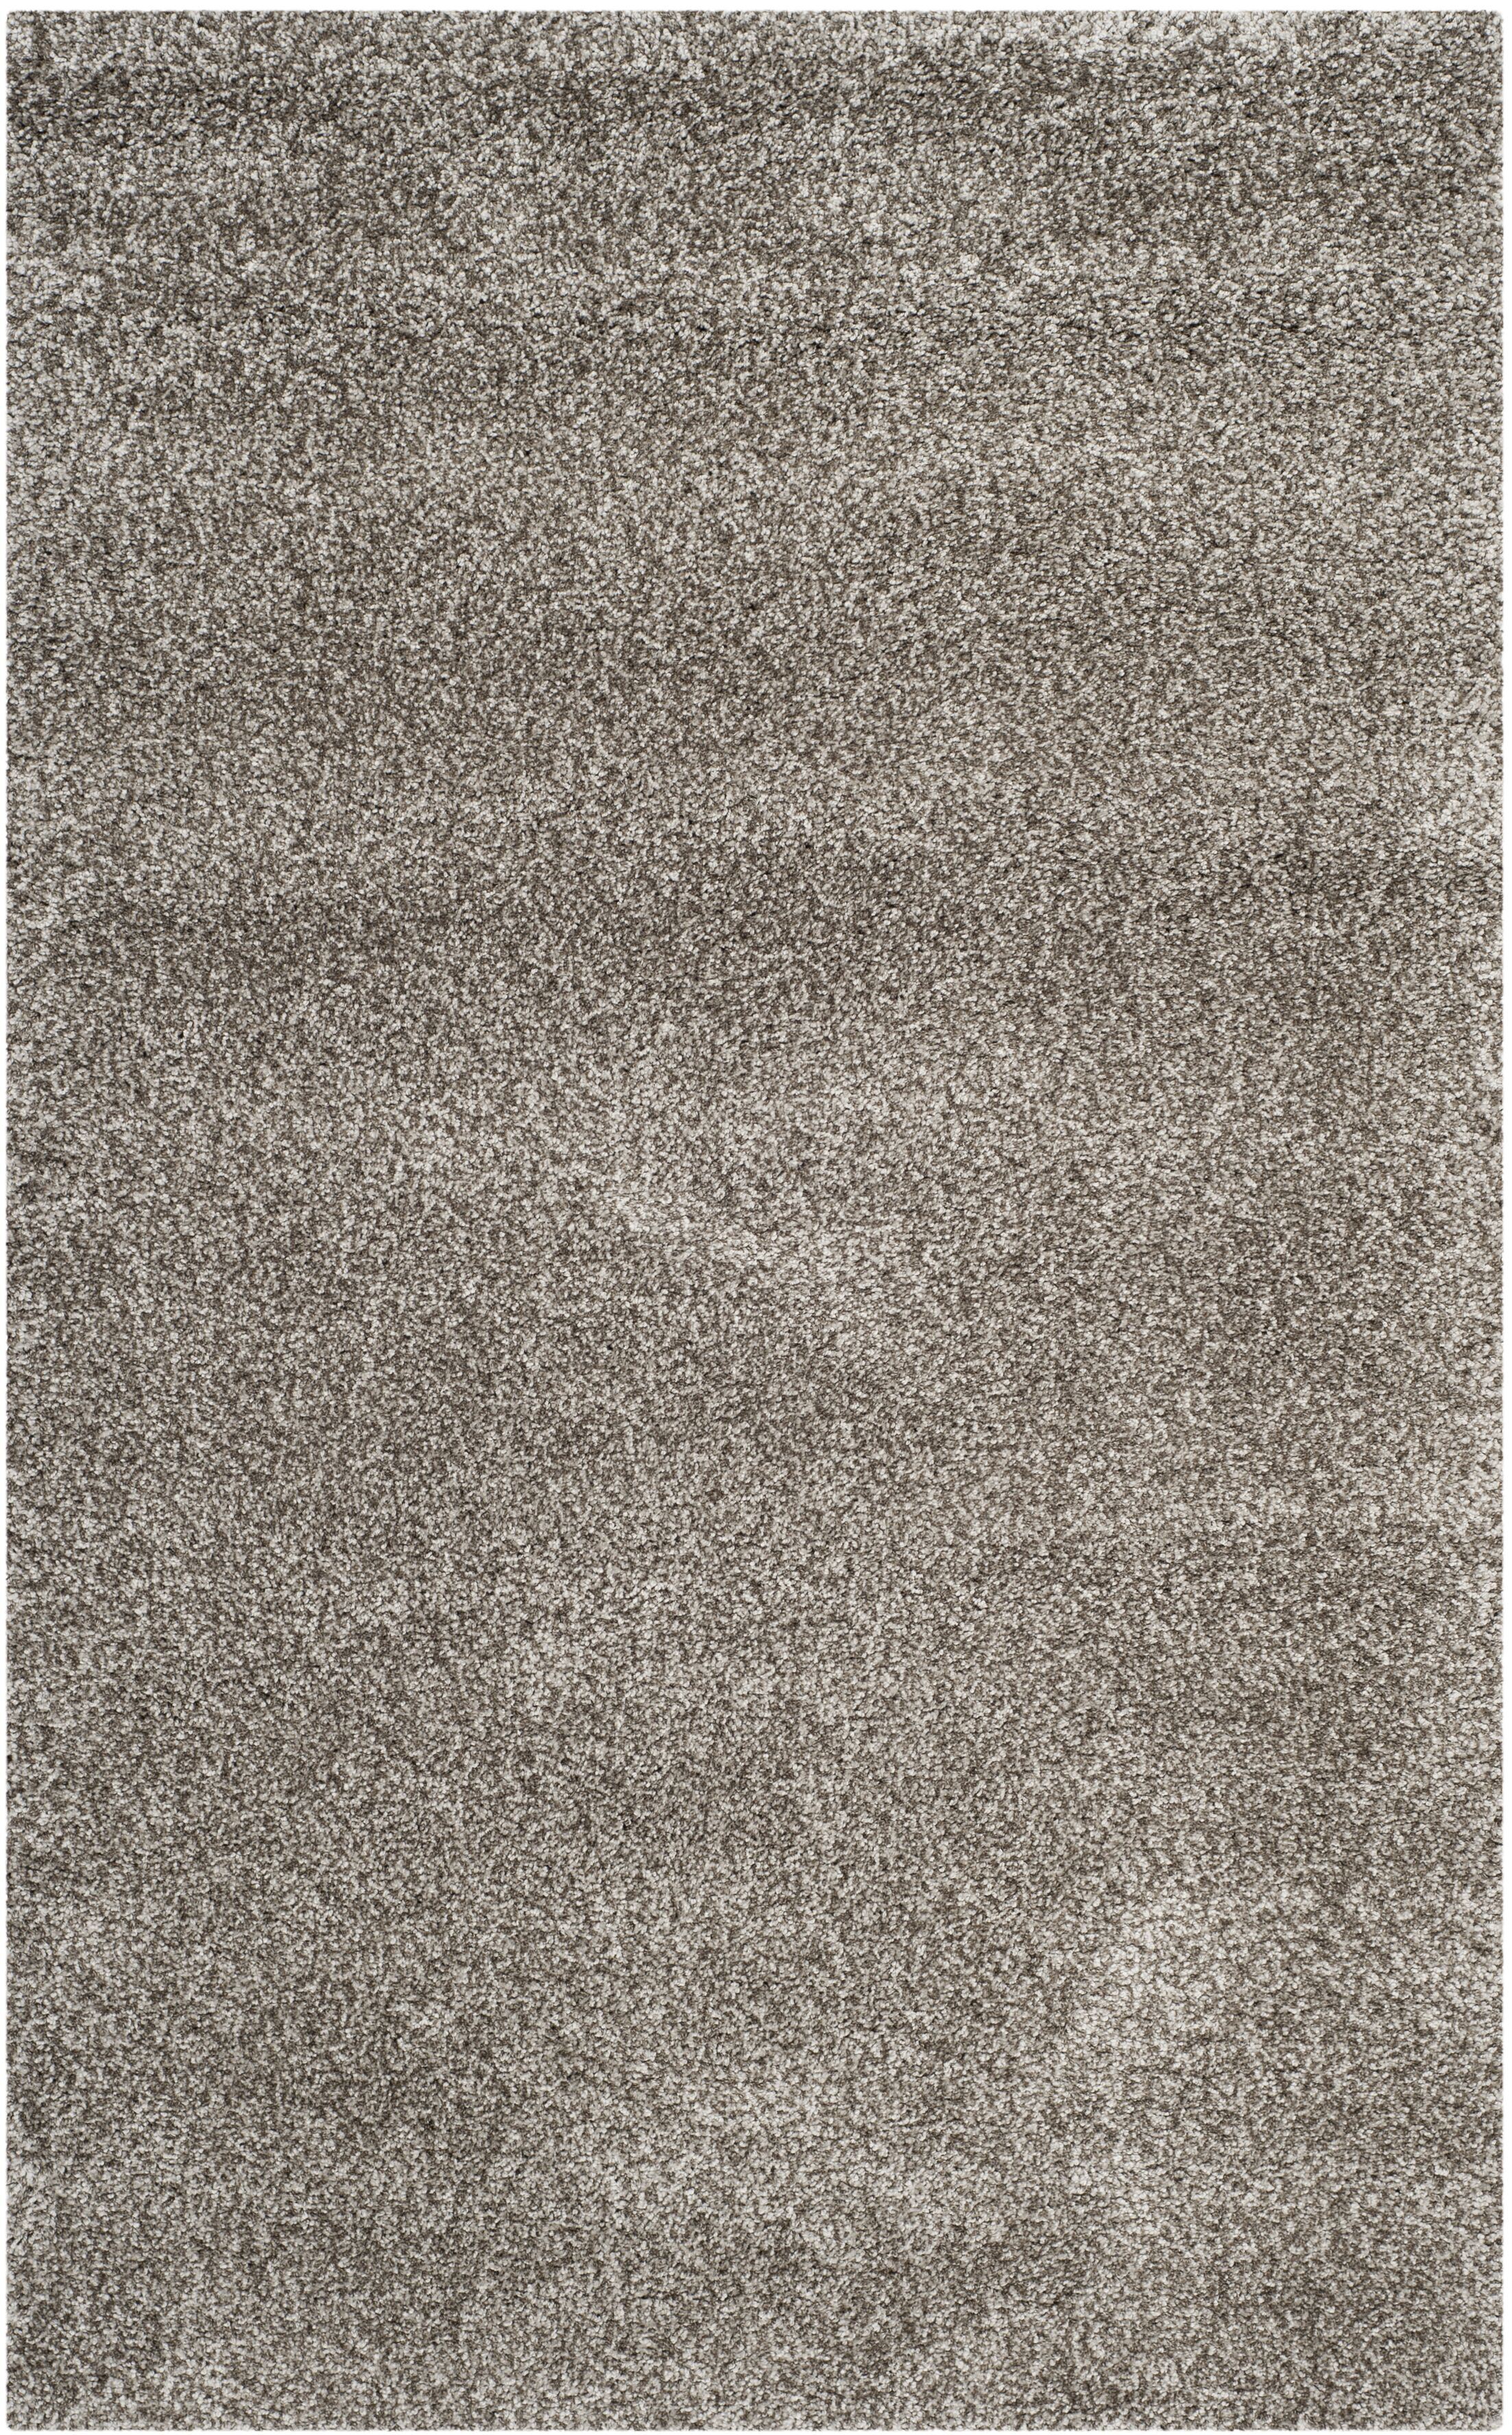 Starr Hill Grey Area Rug Rug Size: Rectangle 8'6